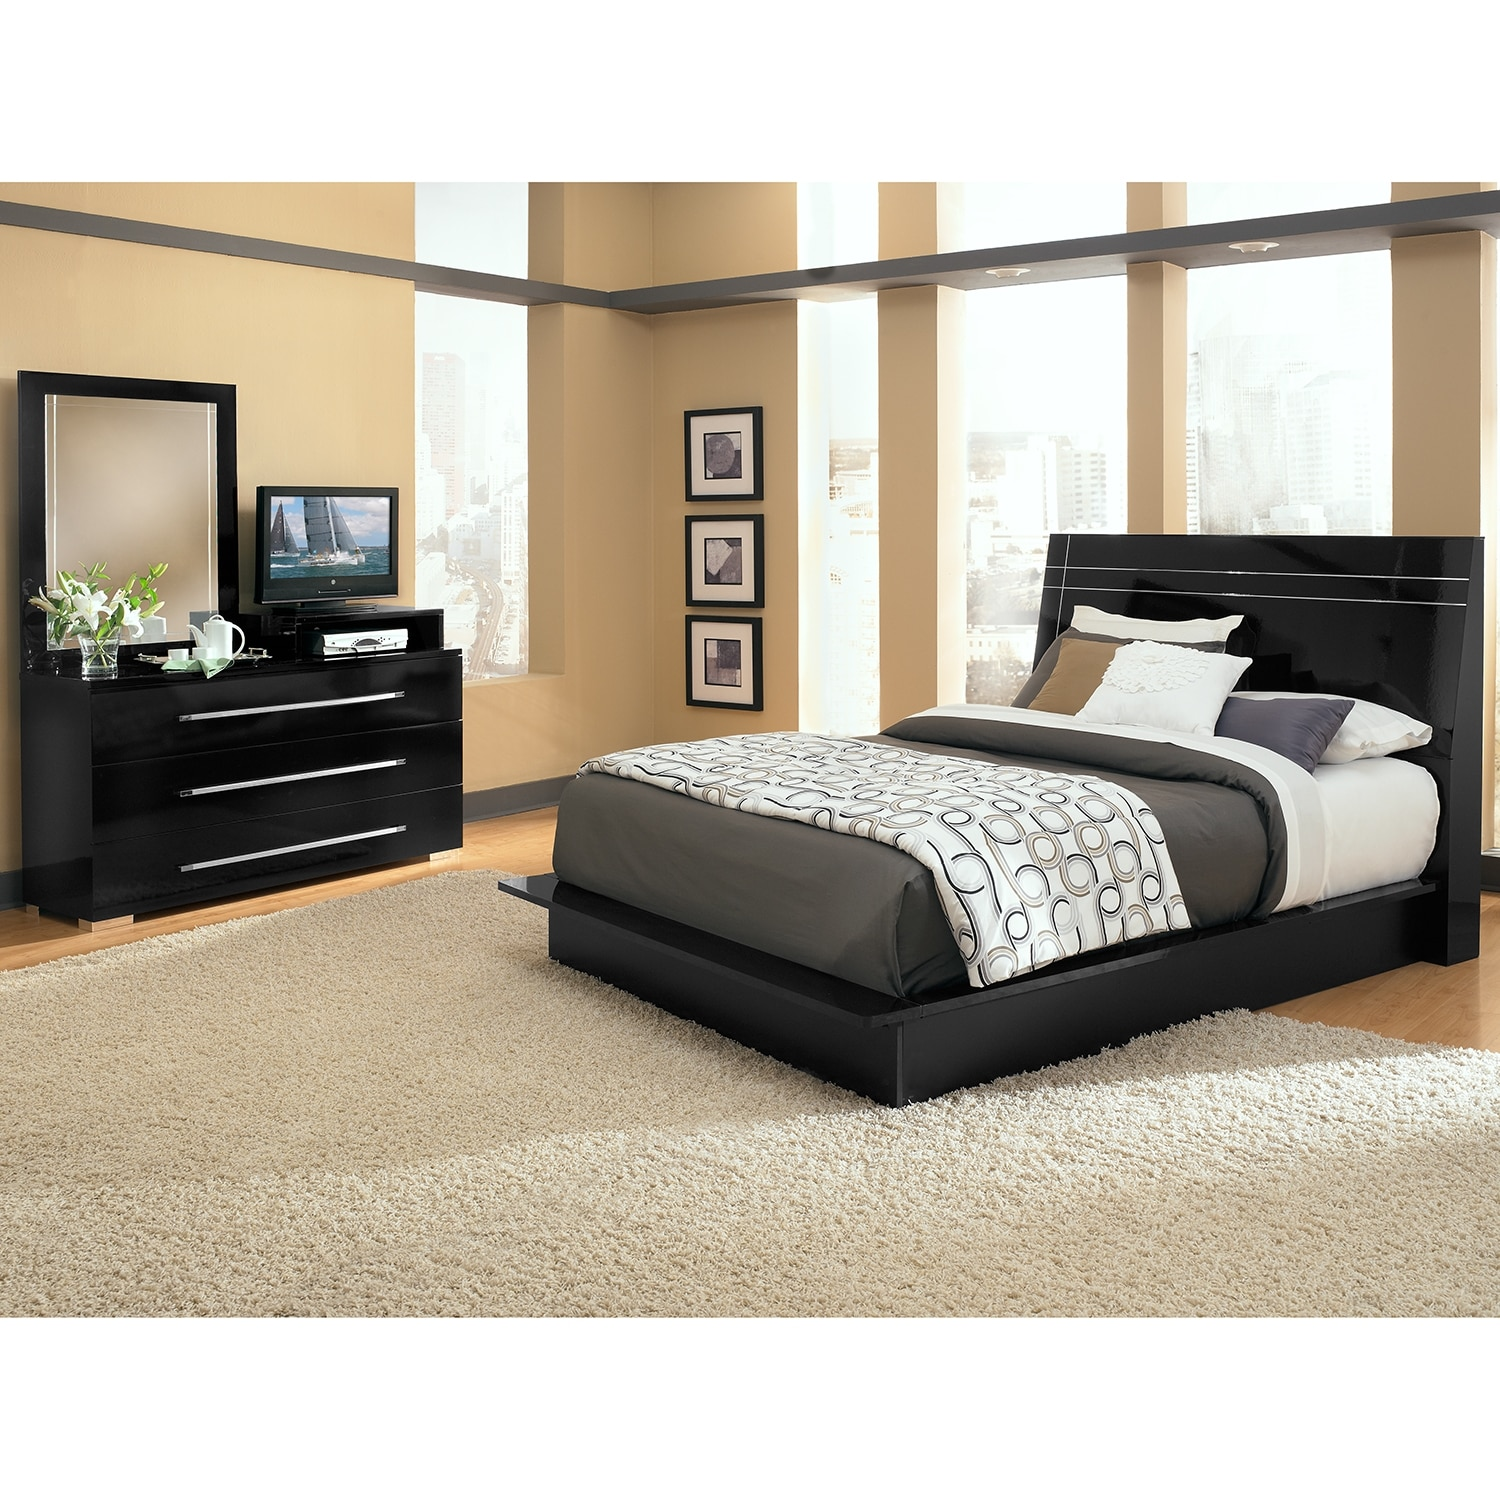 [Dimora Black II 5 Pc. Queen Bedroom]